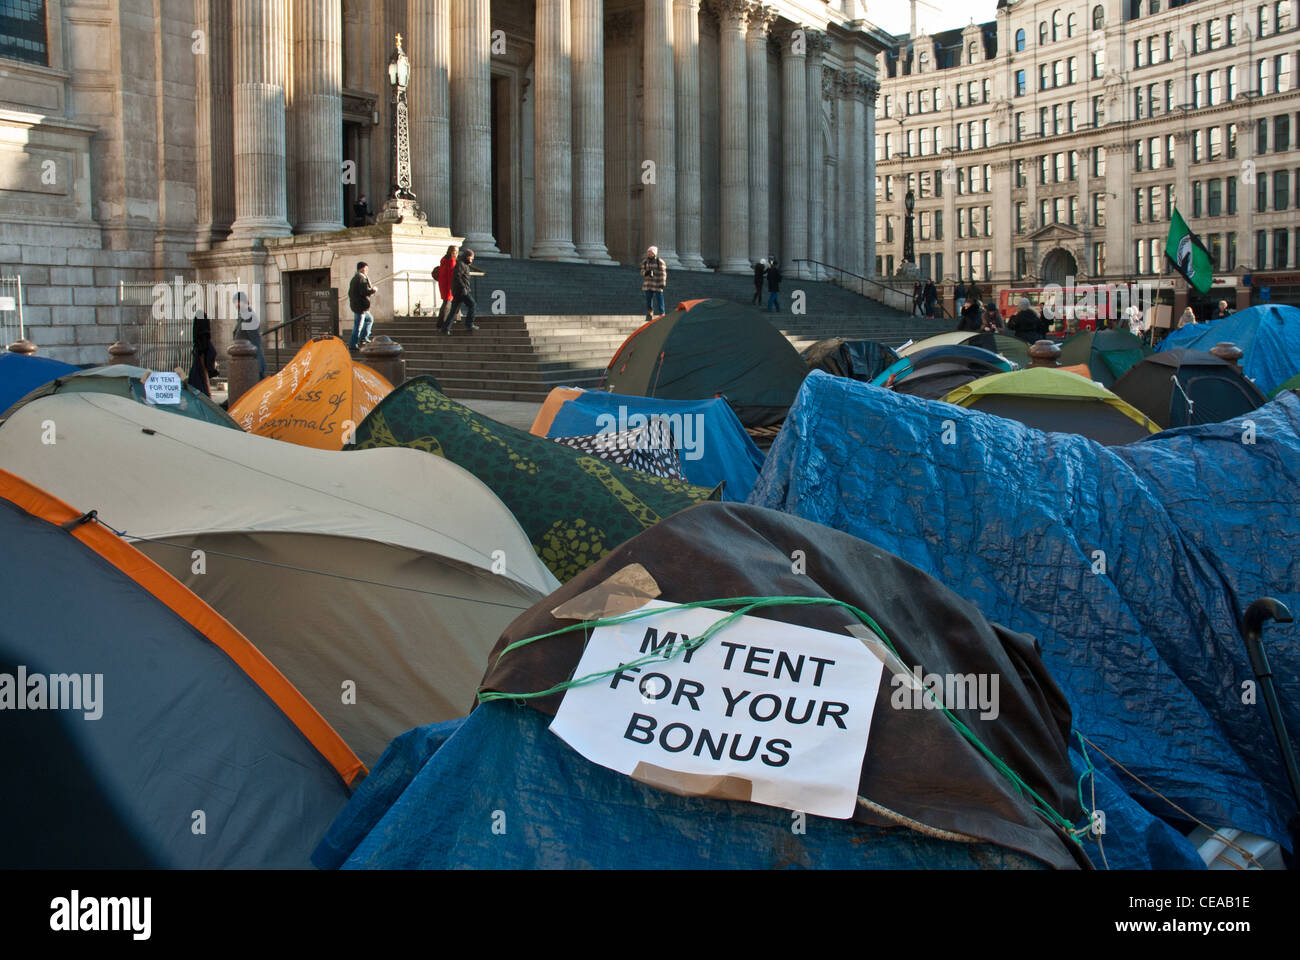 Occupy London, St Pauls. Tents in front of cathedral with placard 'my tent for your bonus' in foreground. - Stock Image